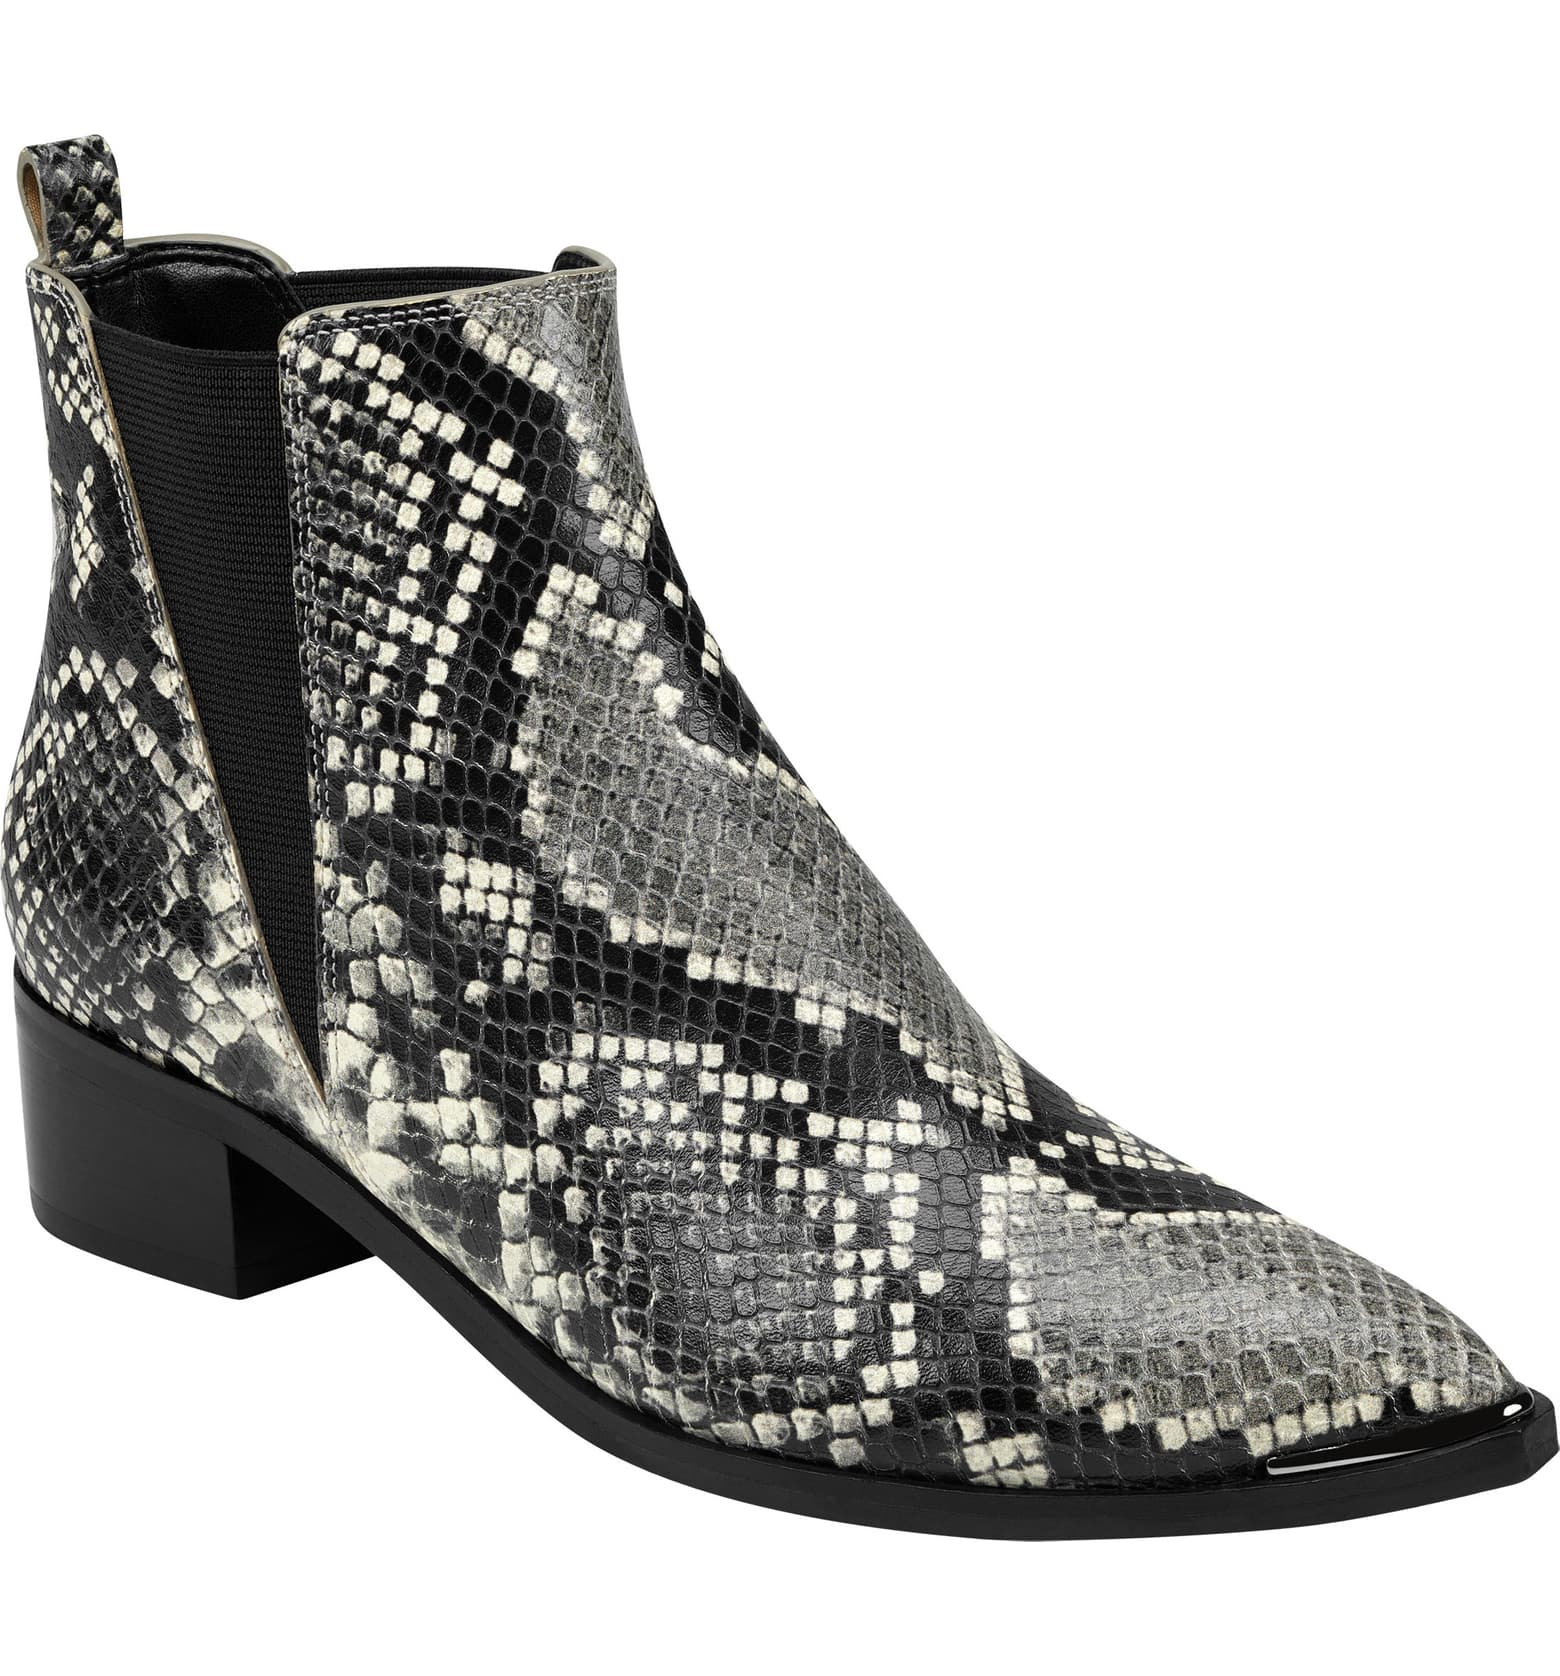 Snake skin Chelsea boots are so popular right now for fall 2019!